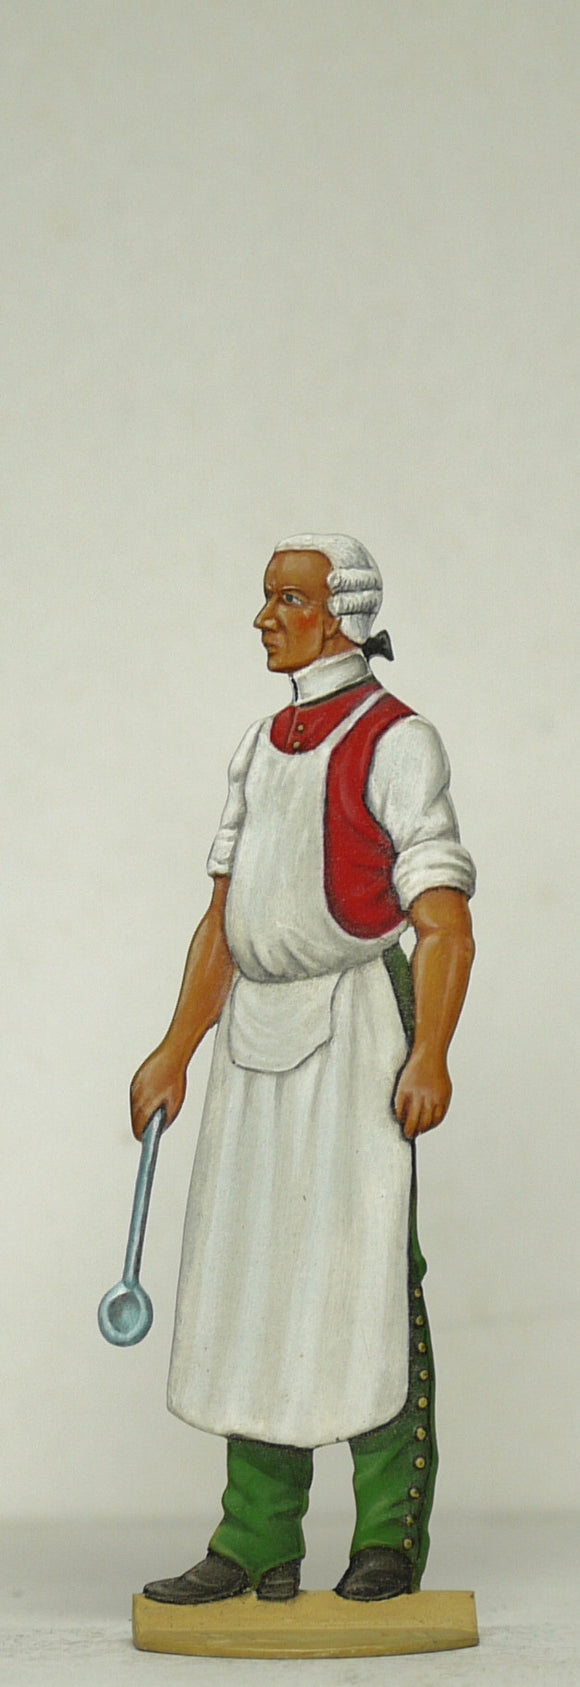 Valet with ladle - Glorious Empires-Historical Miniatures